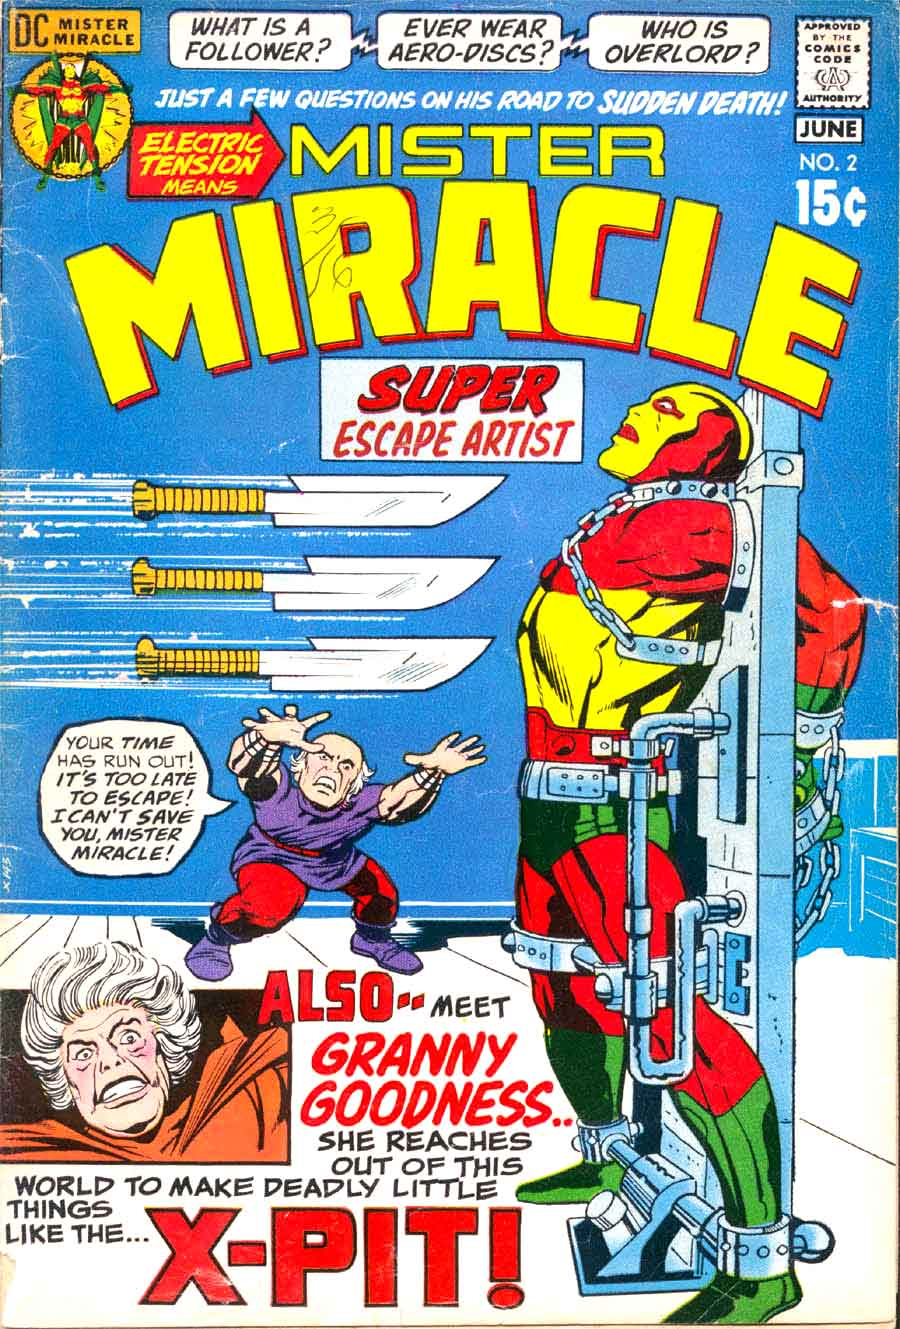 Mister Miracle v1 #2 dc 1970s bronze age comic book cover art by Jack Kirby